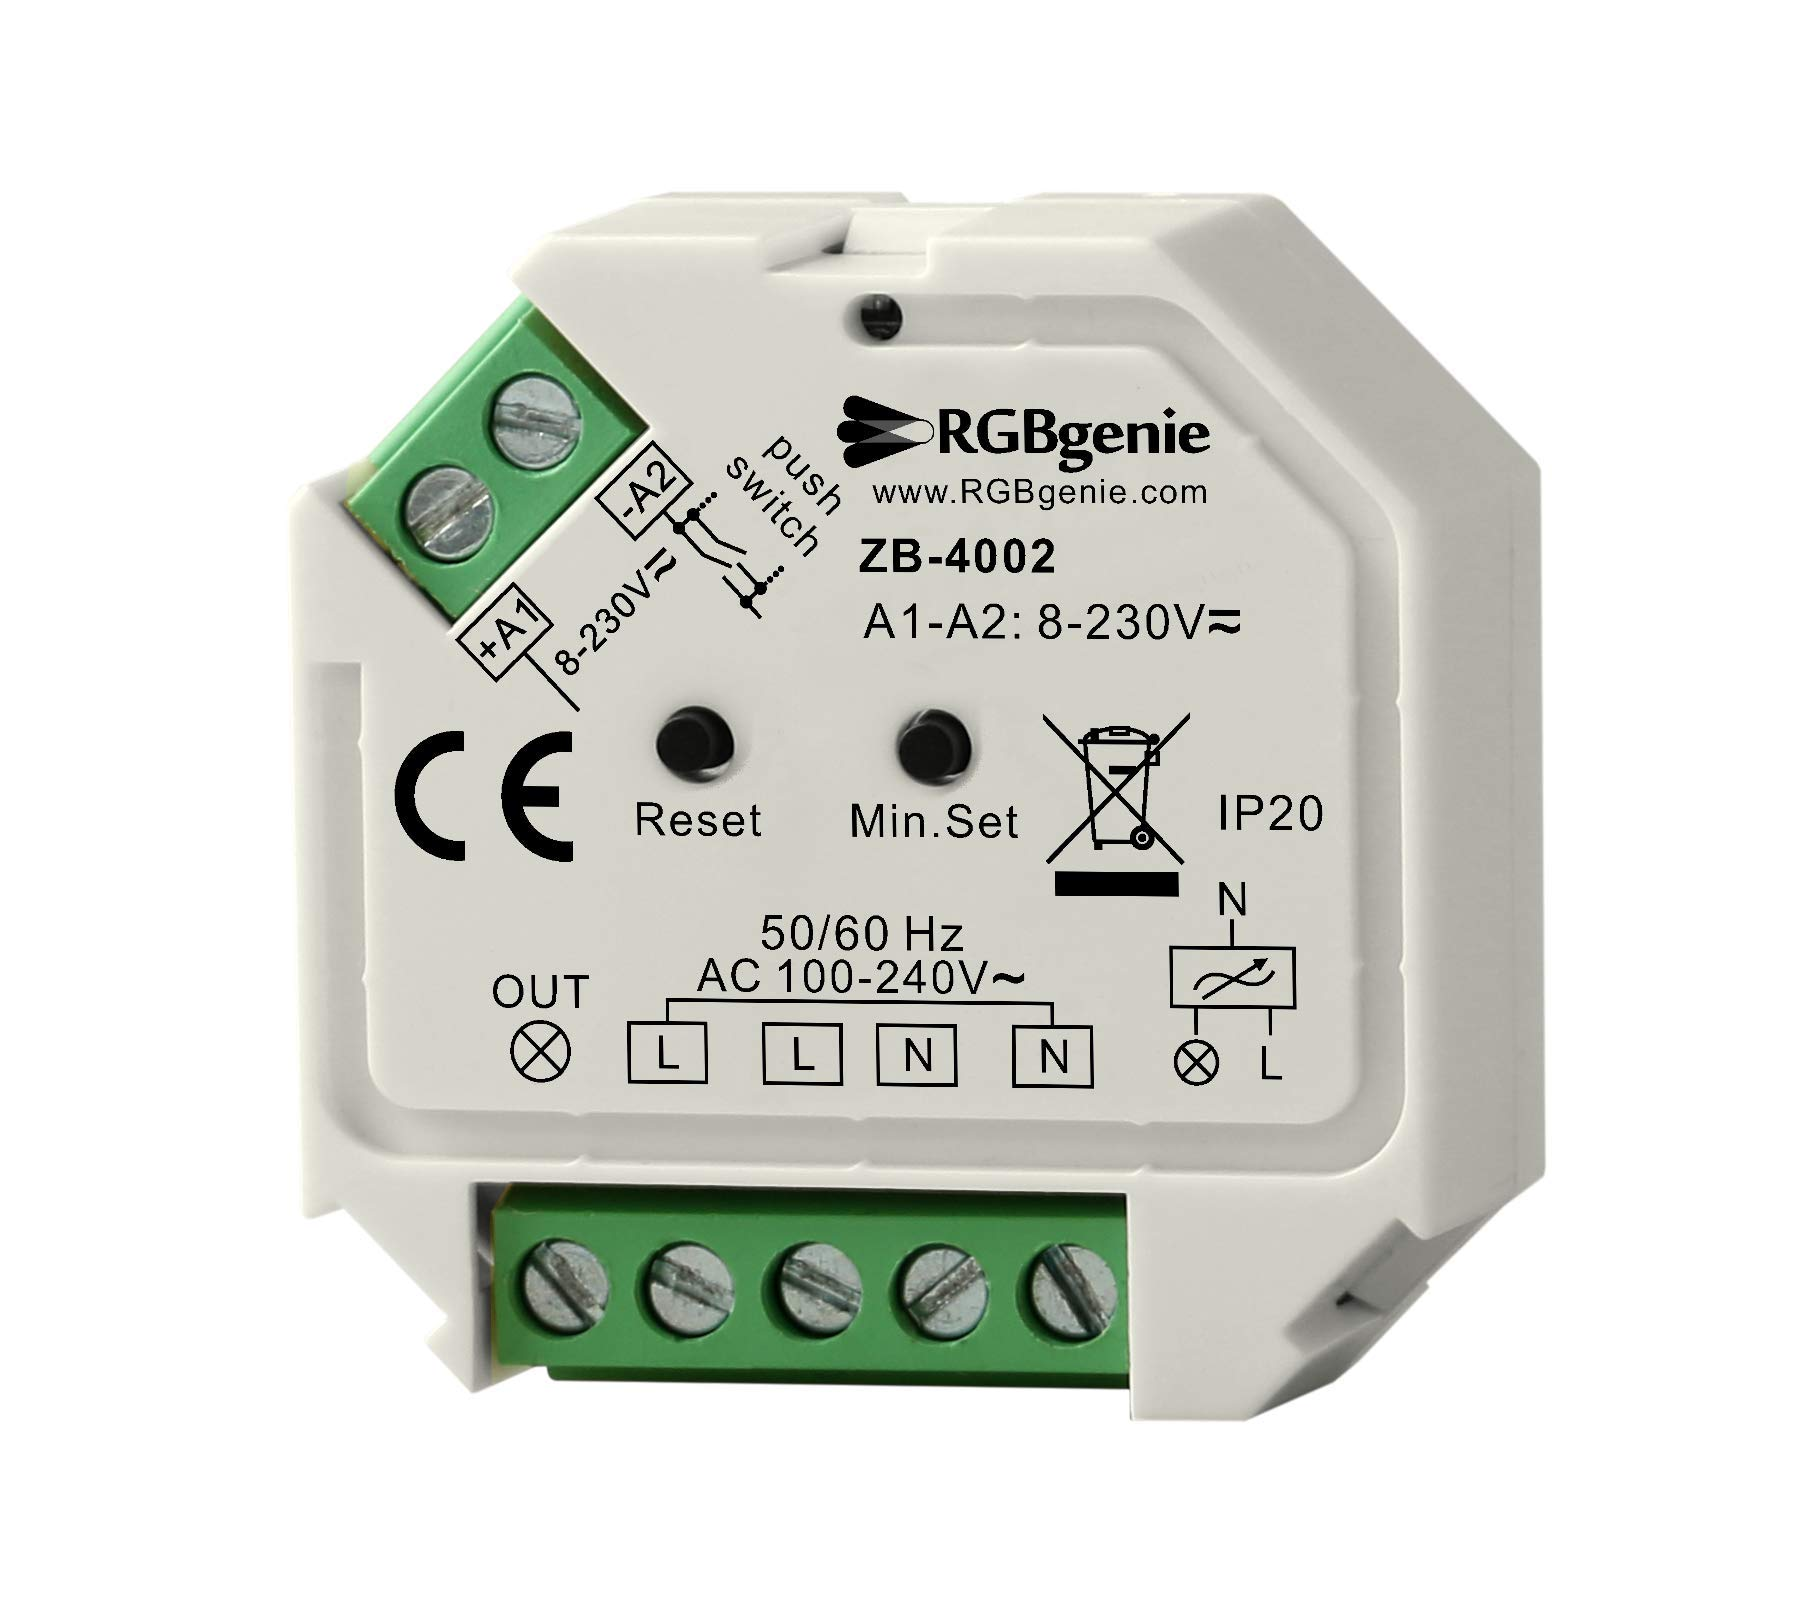 Zigbee Micro Controller and Lamp Module - Single Channel Trailing Edge Dimmer with Momentary Switch Input. 200 Watts, Zigbee 3.0. RGBgenie ZB-4002